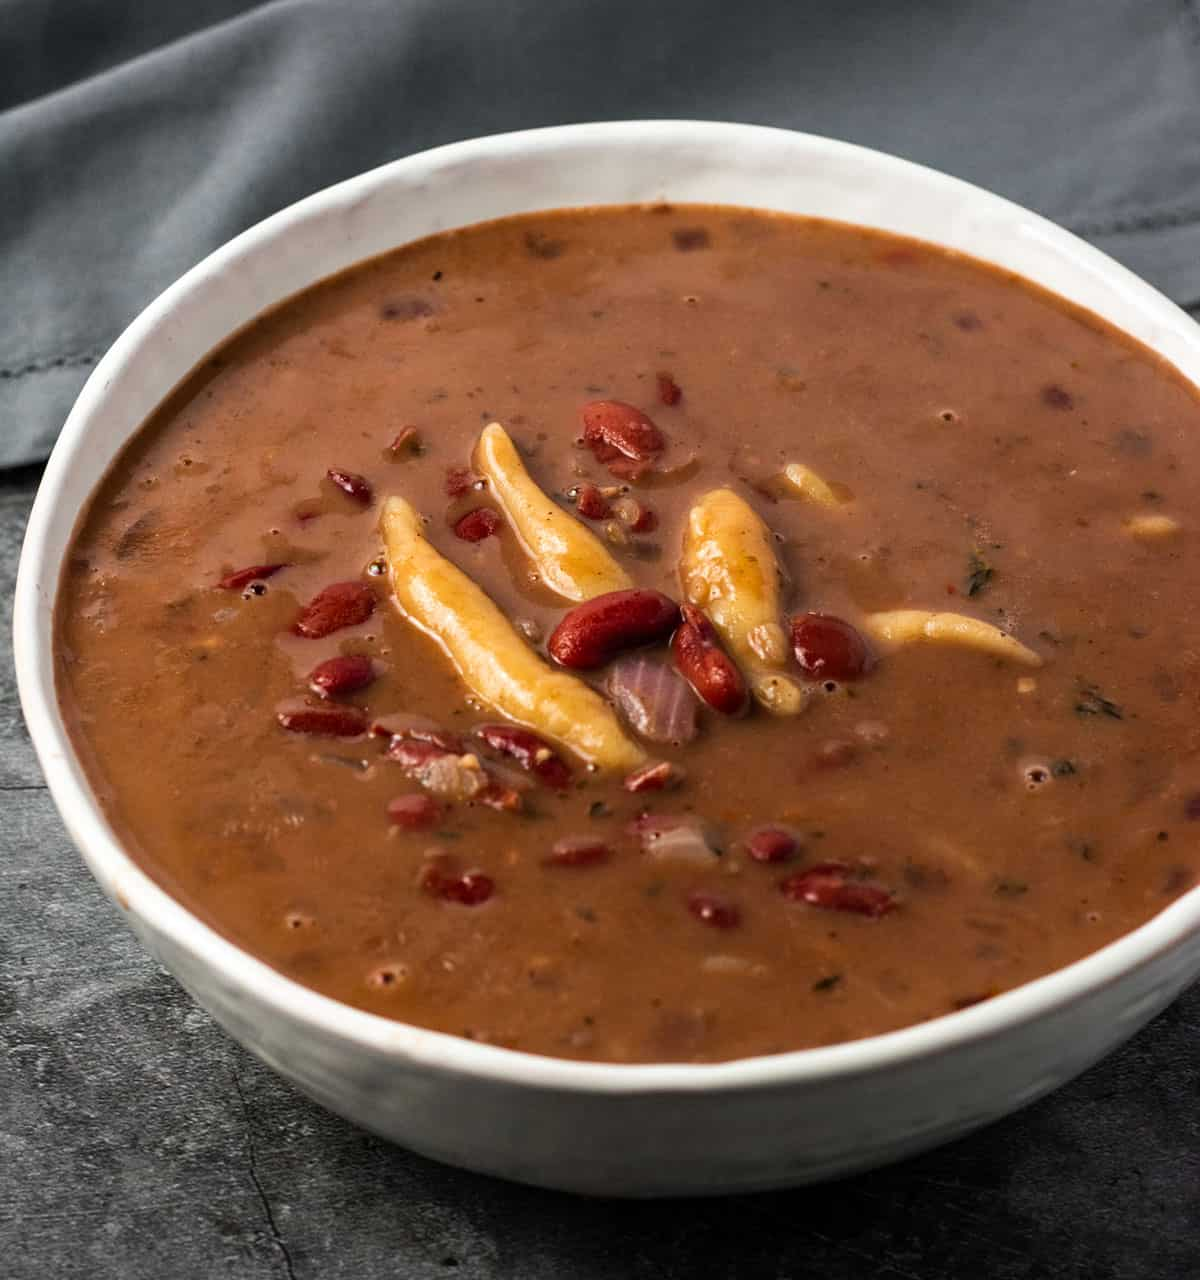 Jamaican red pea soup in a white bowl on a grey background